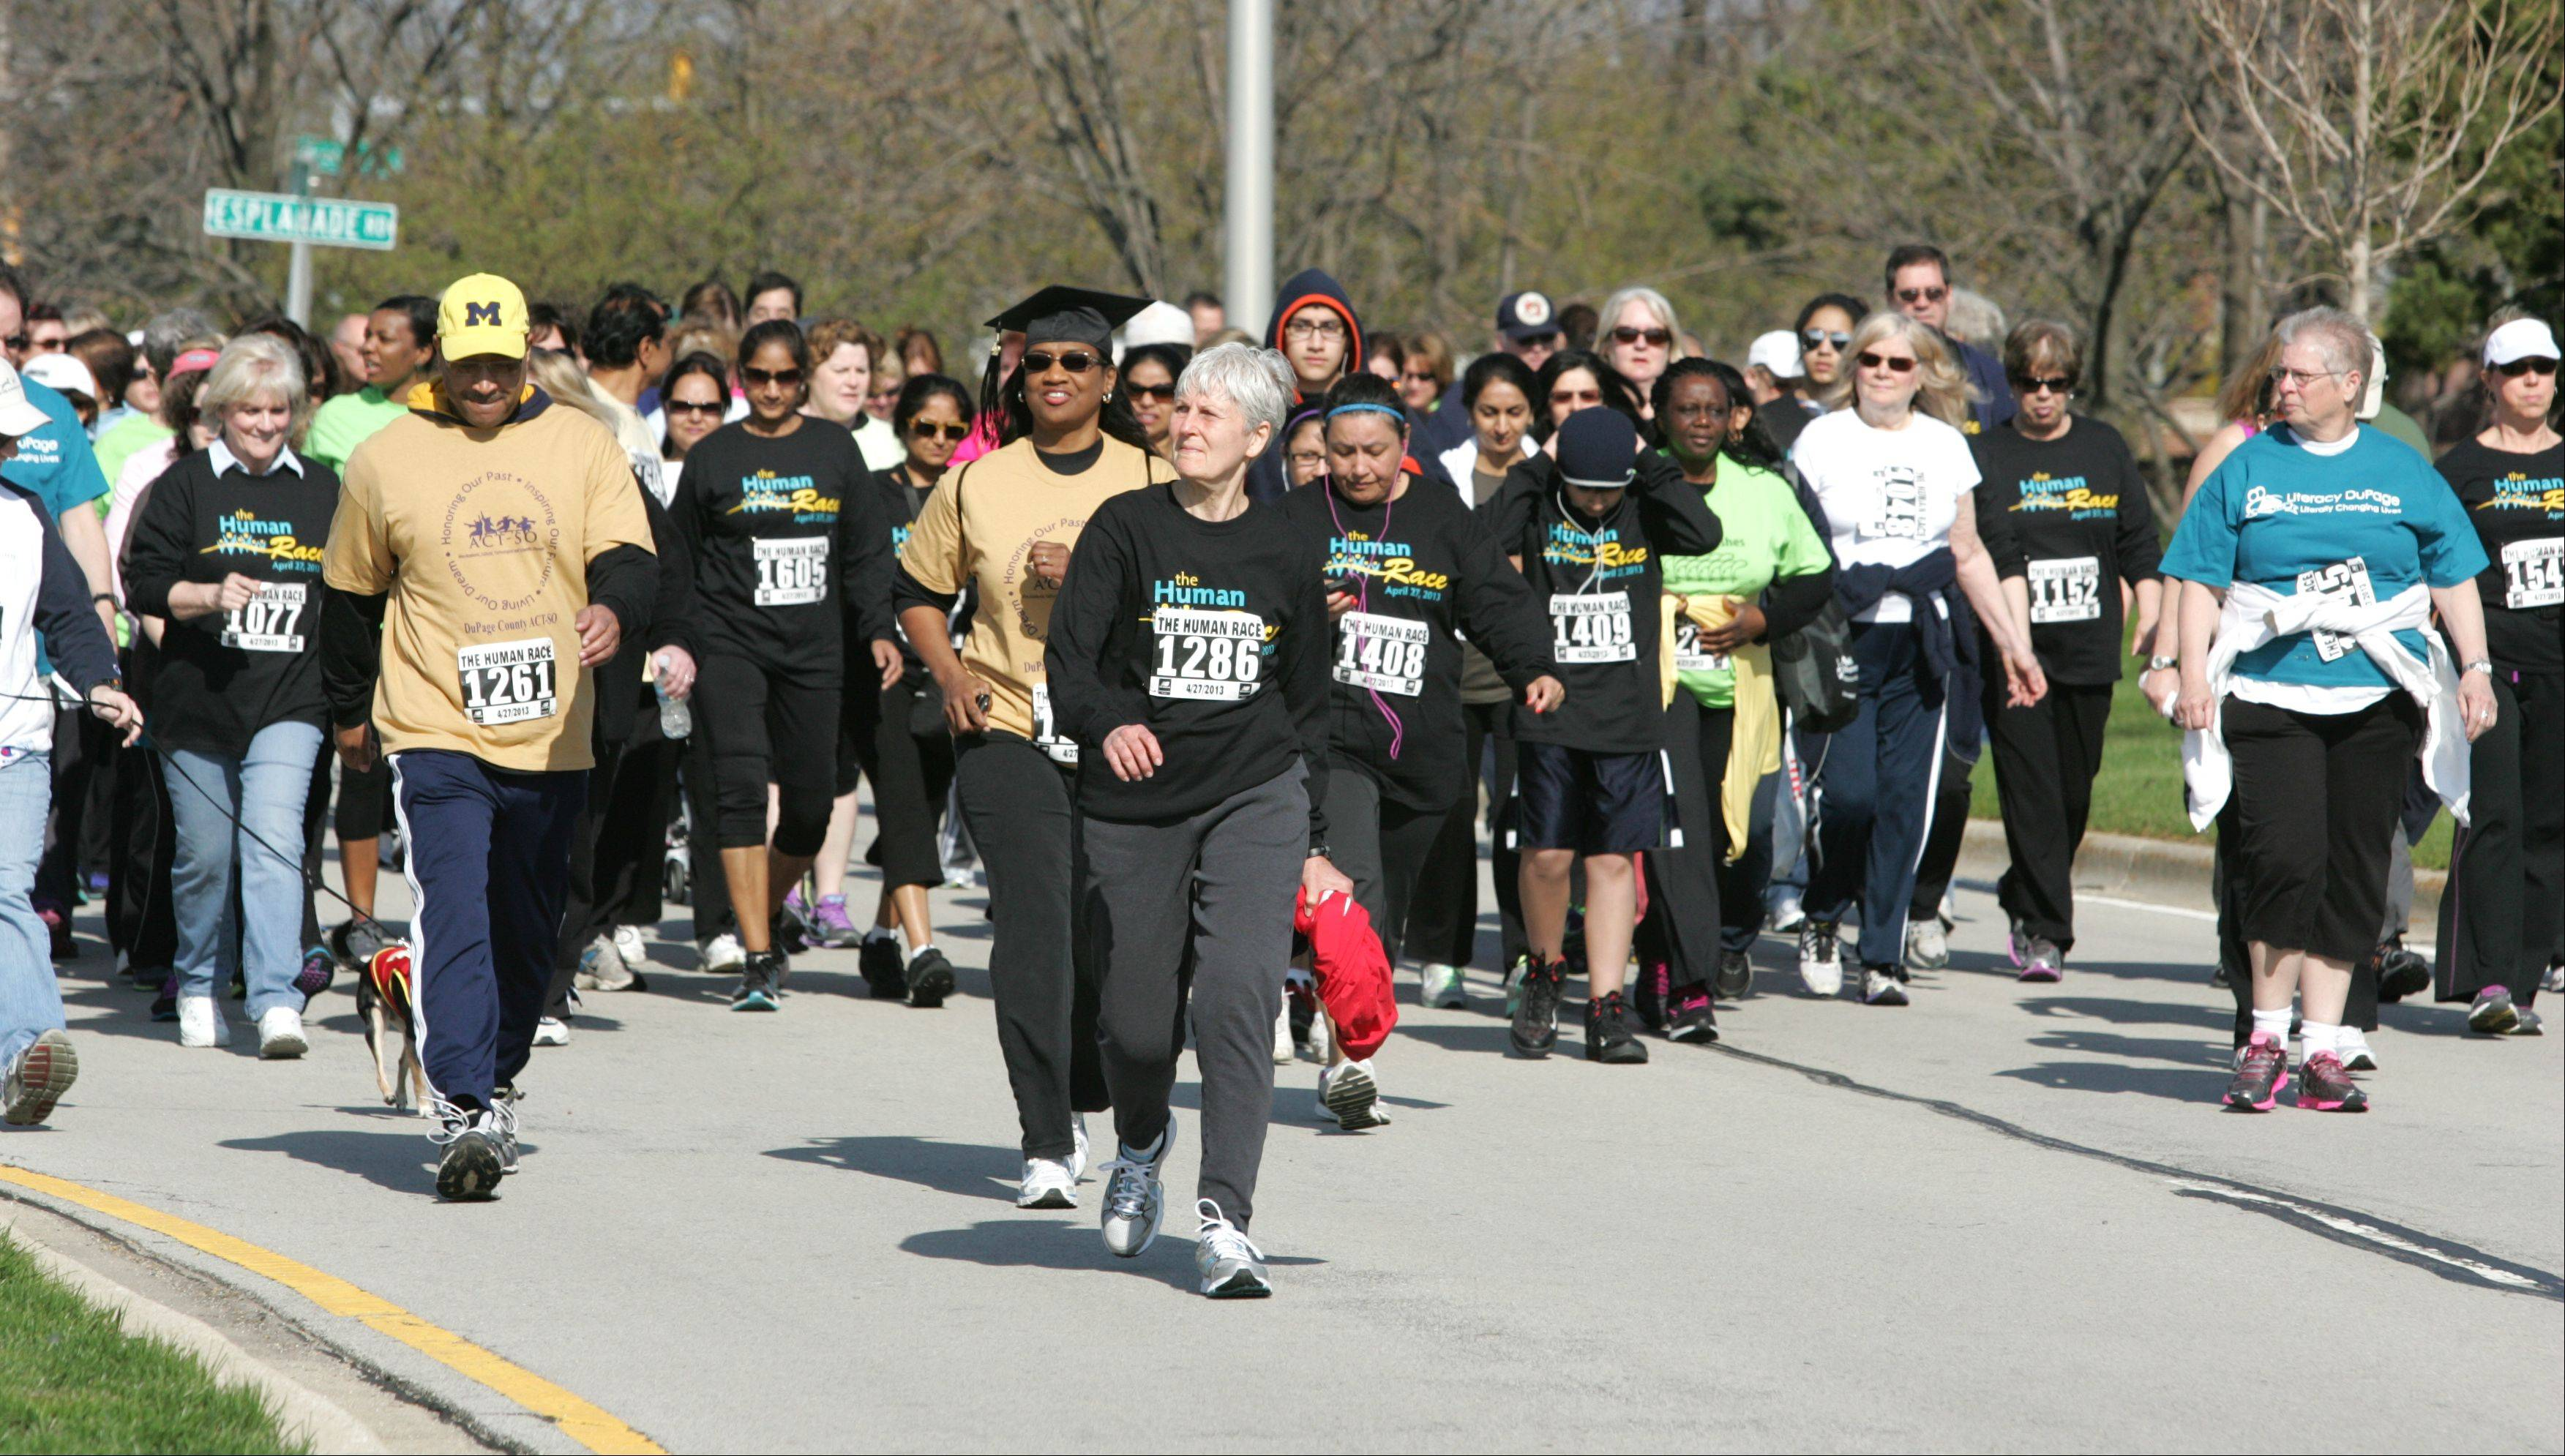 Walkers begin their 2-mile course Saturday morning in Downers Grove as part of the second annual Human Race hosted by Giving DuPage.